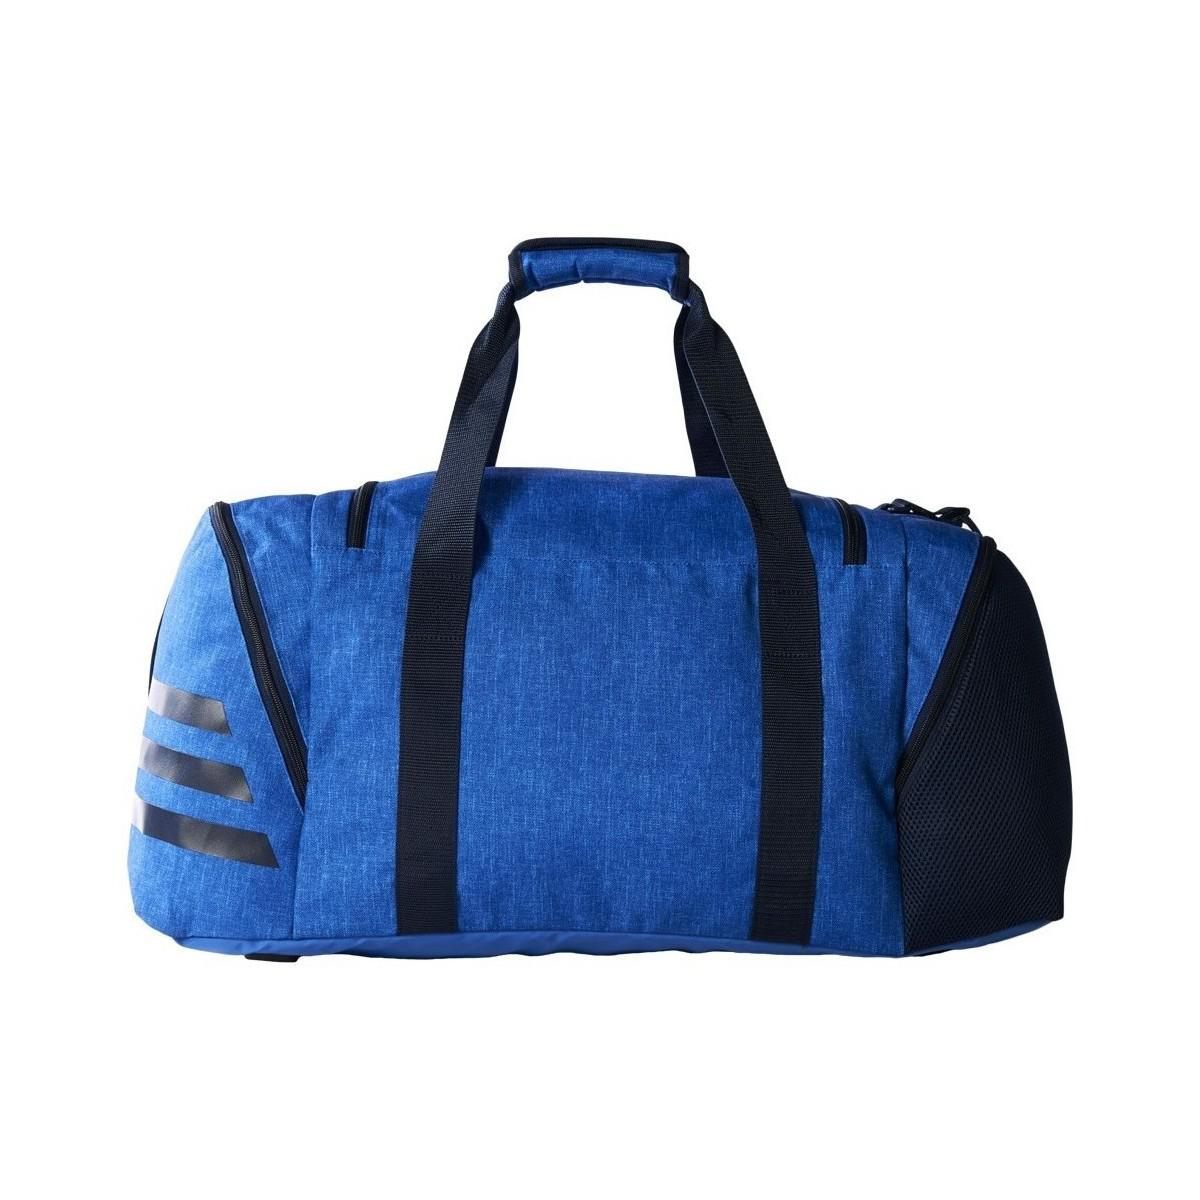 393e66ae4c1c Lyst - Adidas Ace 172 Teambag Women s Sports Bag In Blue in Blue